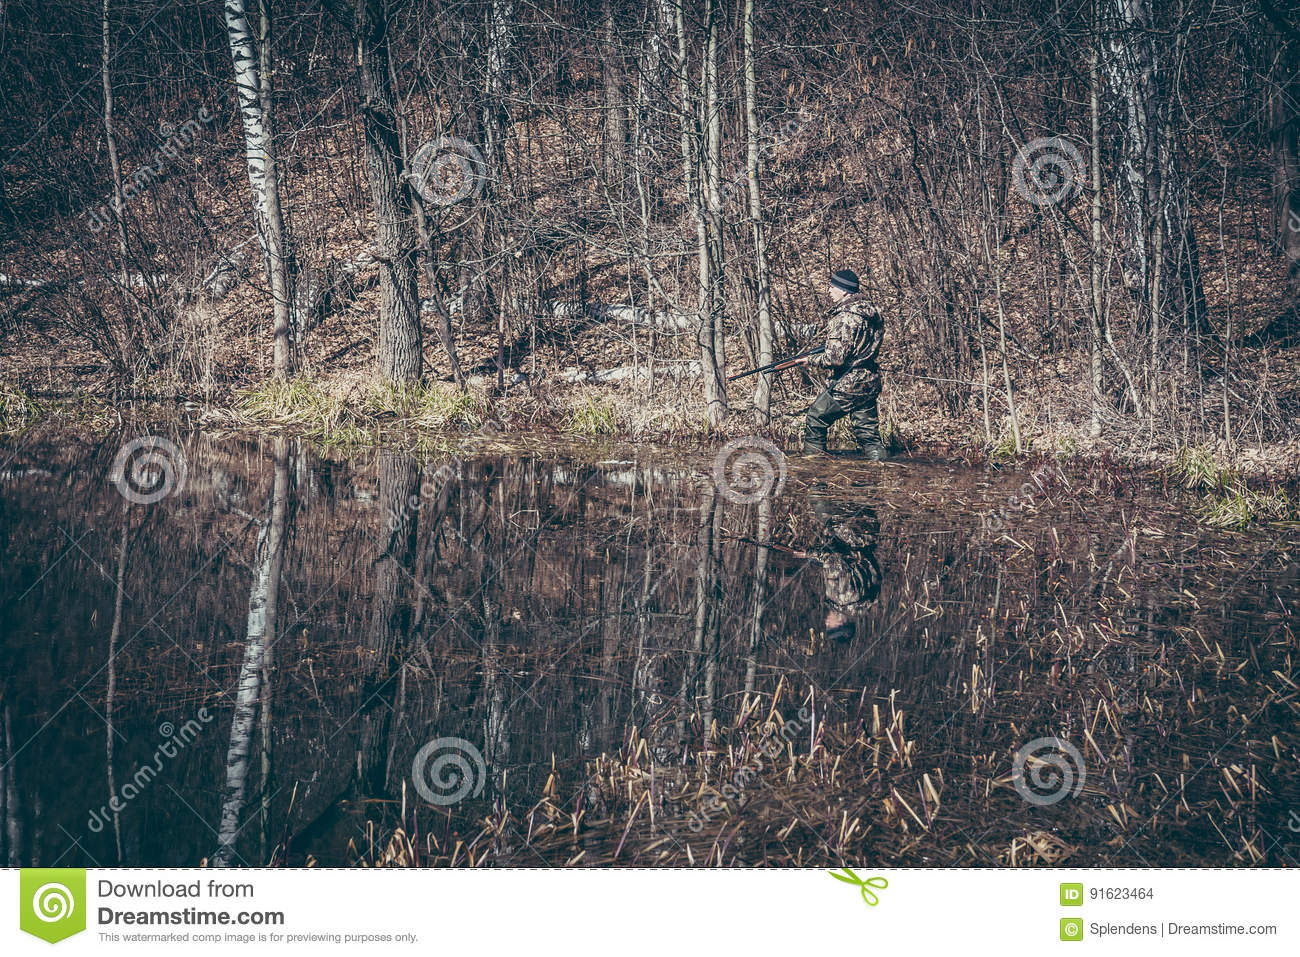 Hunting scene with hunter man stealing in wetland with forest during hunting season